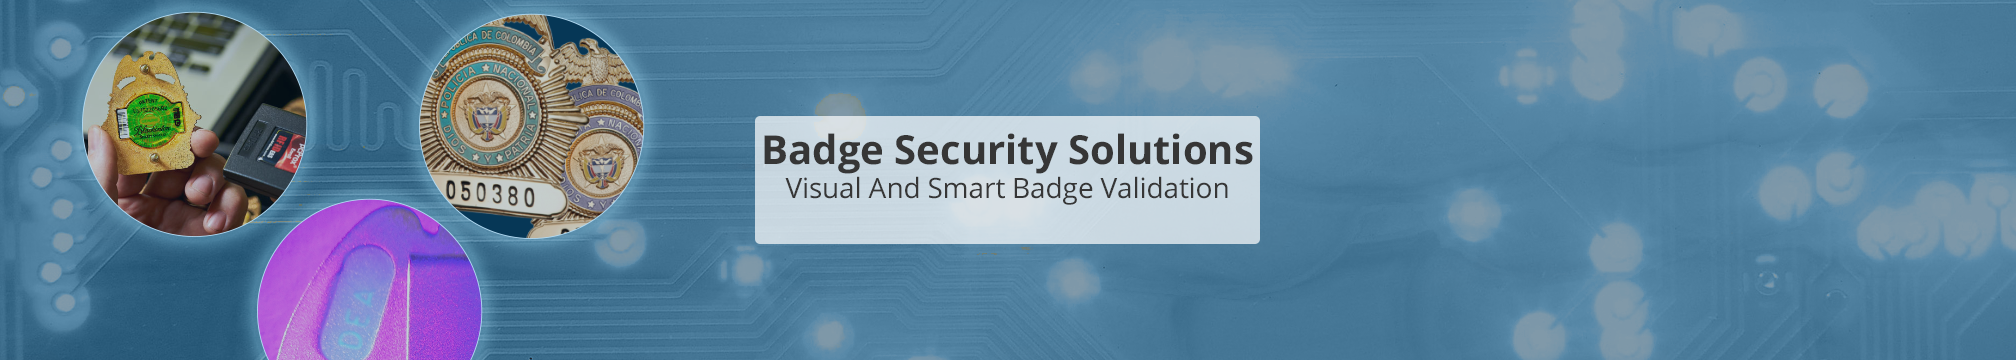 Security Badge Solutions